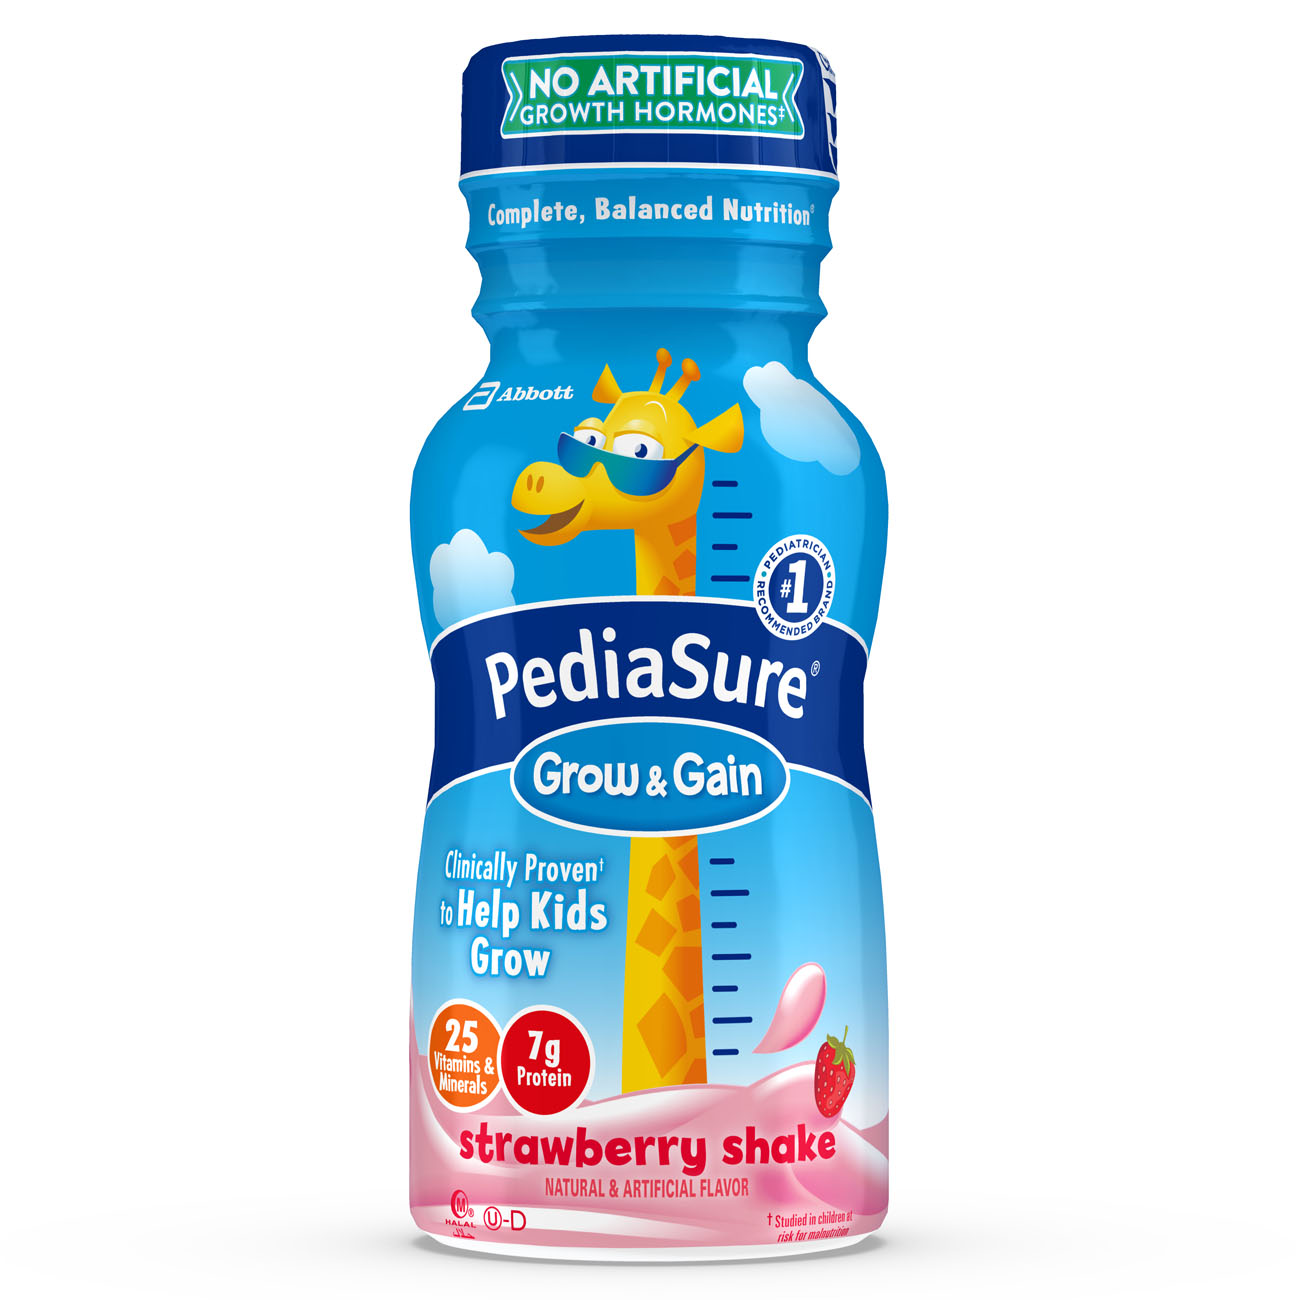 PediaSure Grow & Gain Nutrition Shake For Kids, Stawberry, 8 fl oz (Pack of 24)